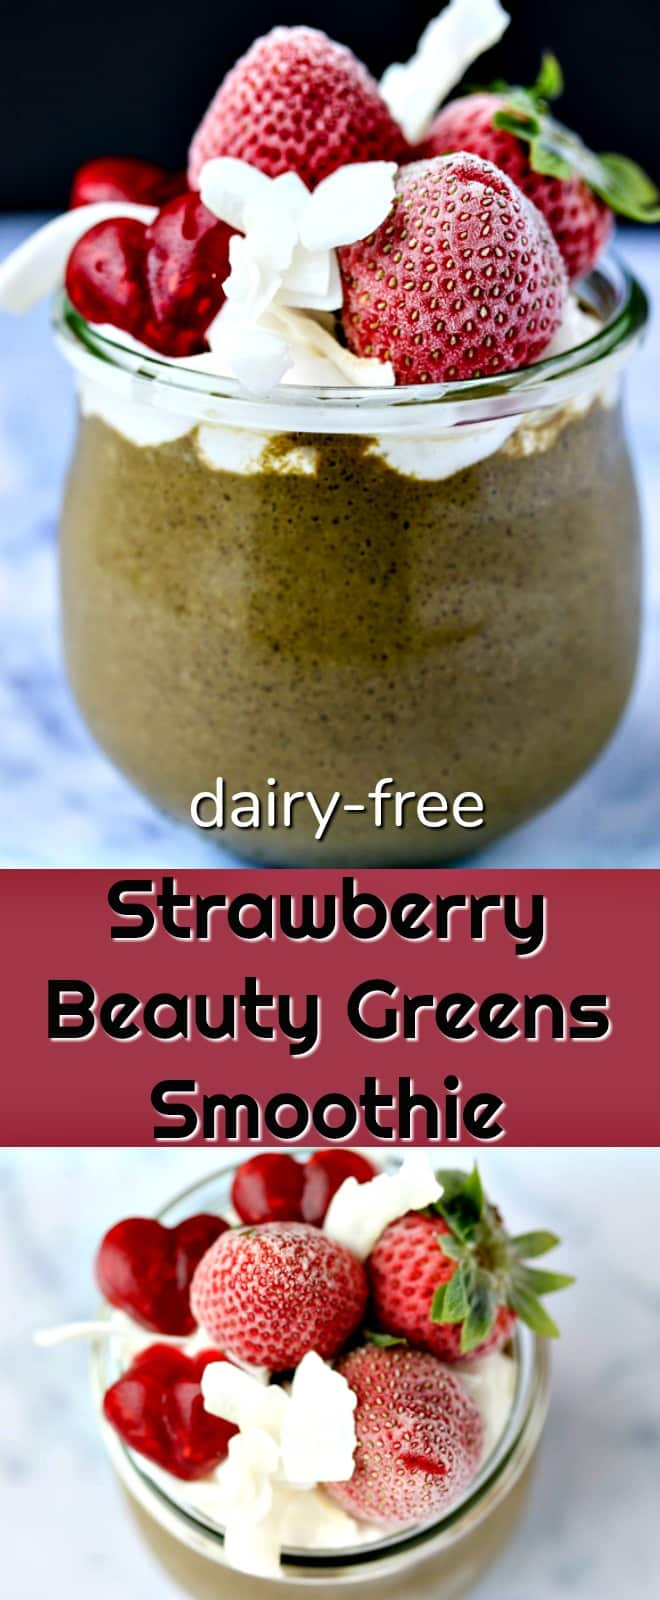 This Strawberry Beauty Greens Smoothie with Gelatin Hearts is nourishing and delicious. It's filled with micronutrients and greens for beautiful skin, plus gelatin hearts to support gut health, too.